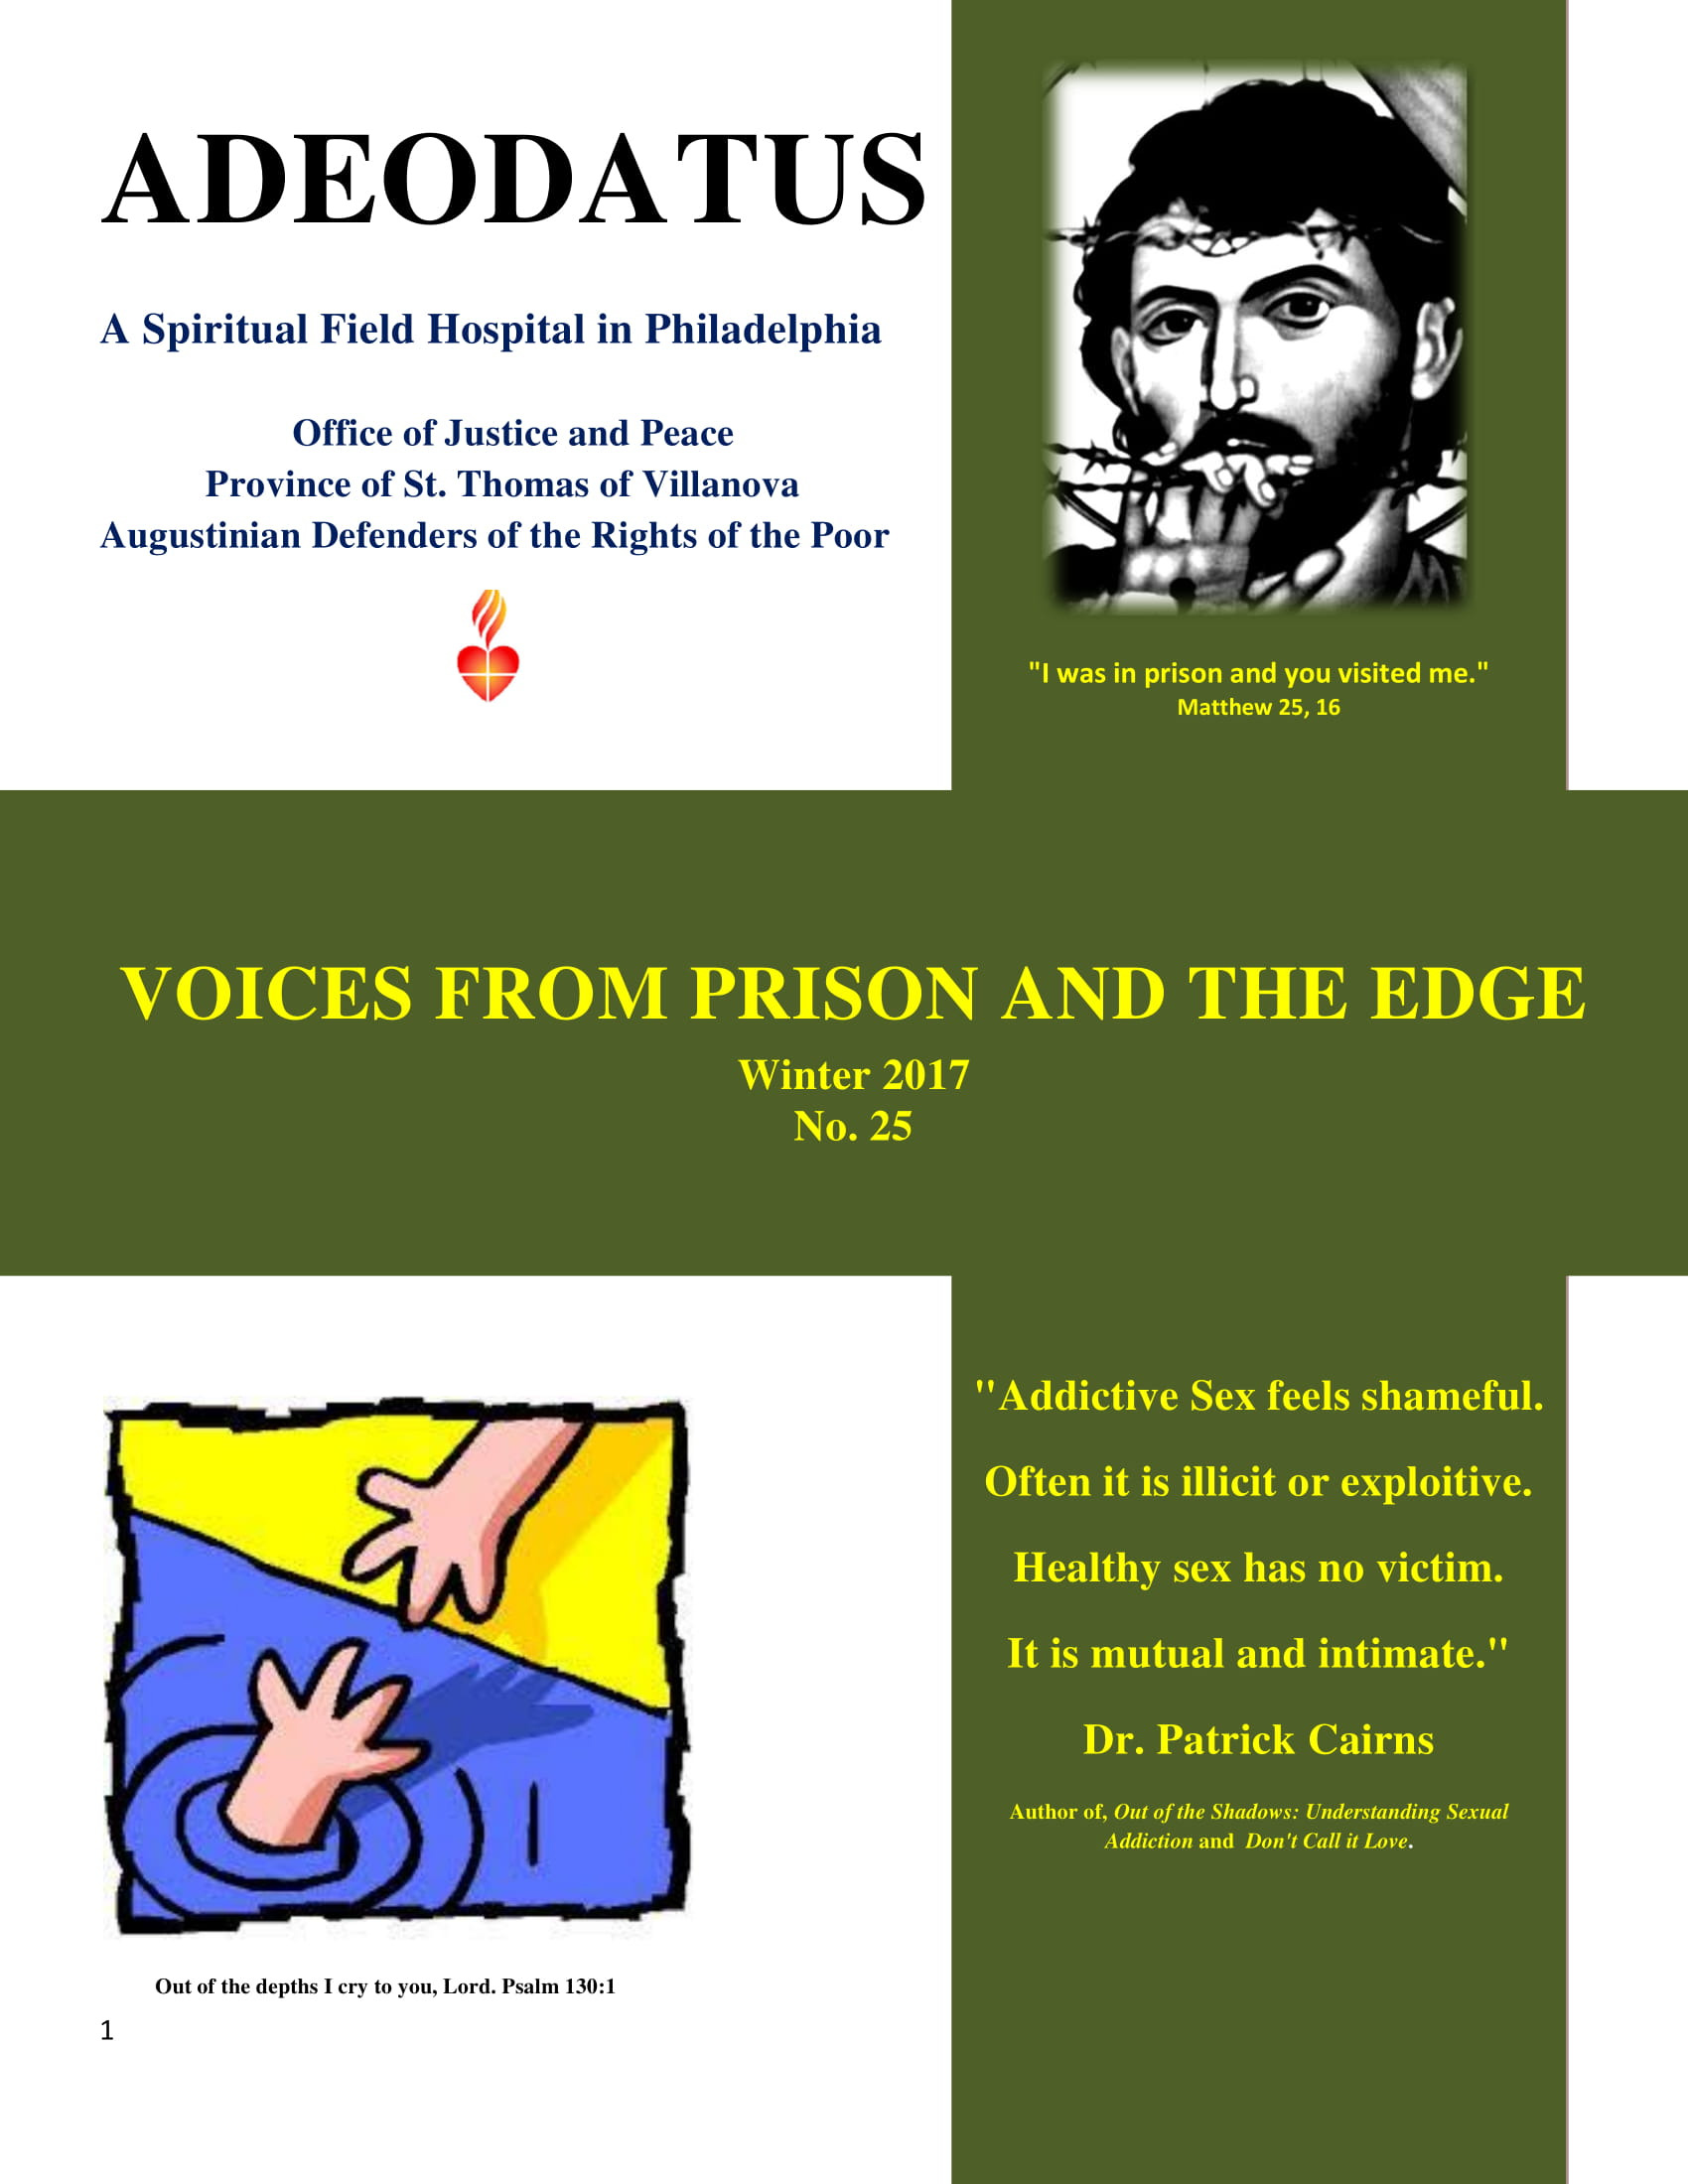 Voices From Prison 25-1.jpg